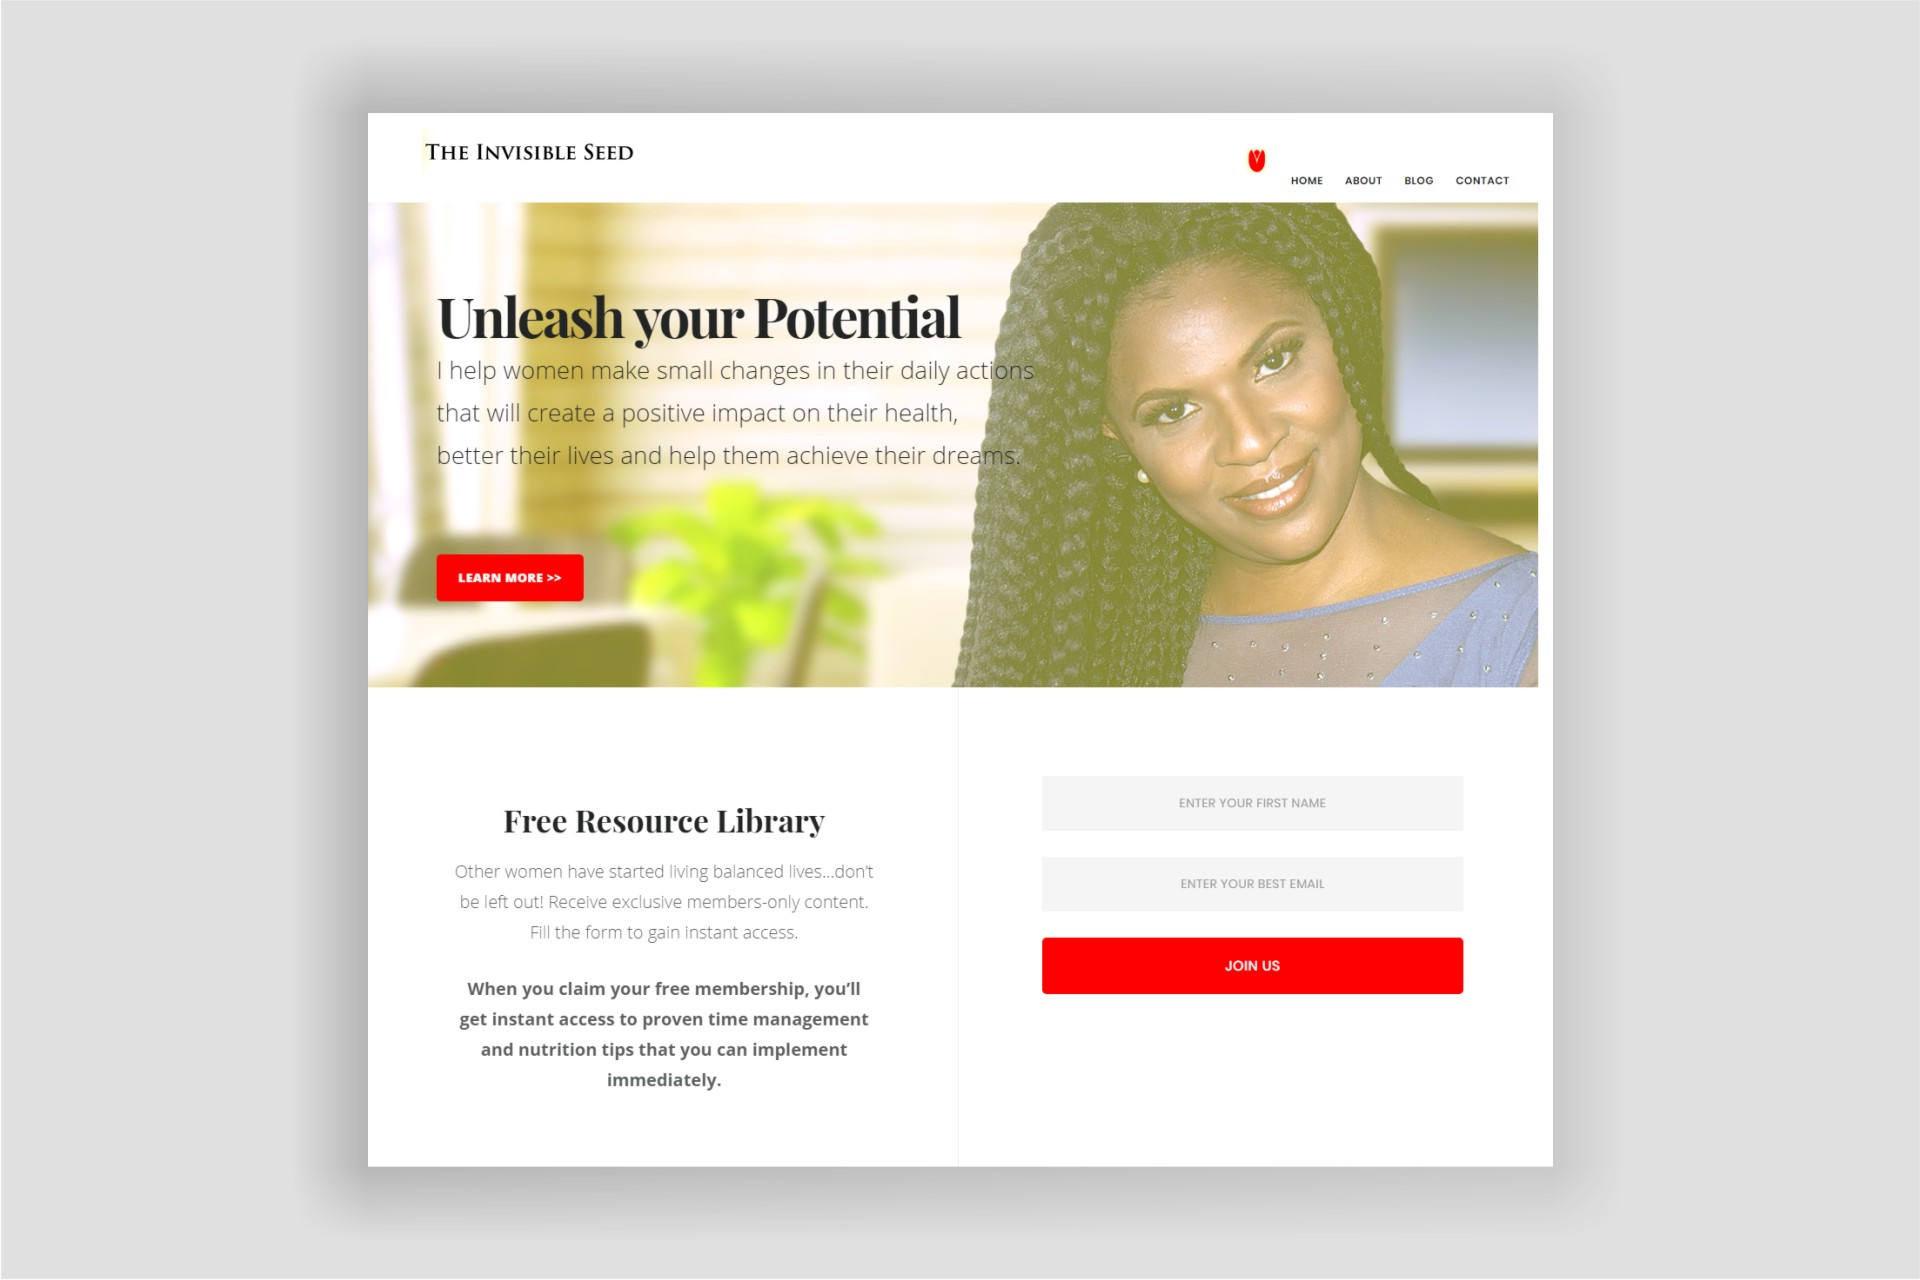 Website Design for The Invisible Seed